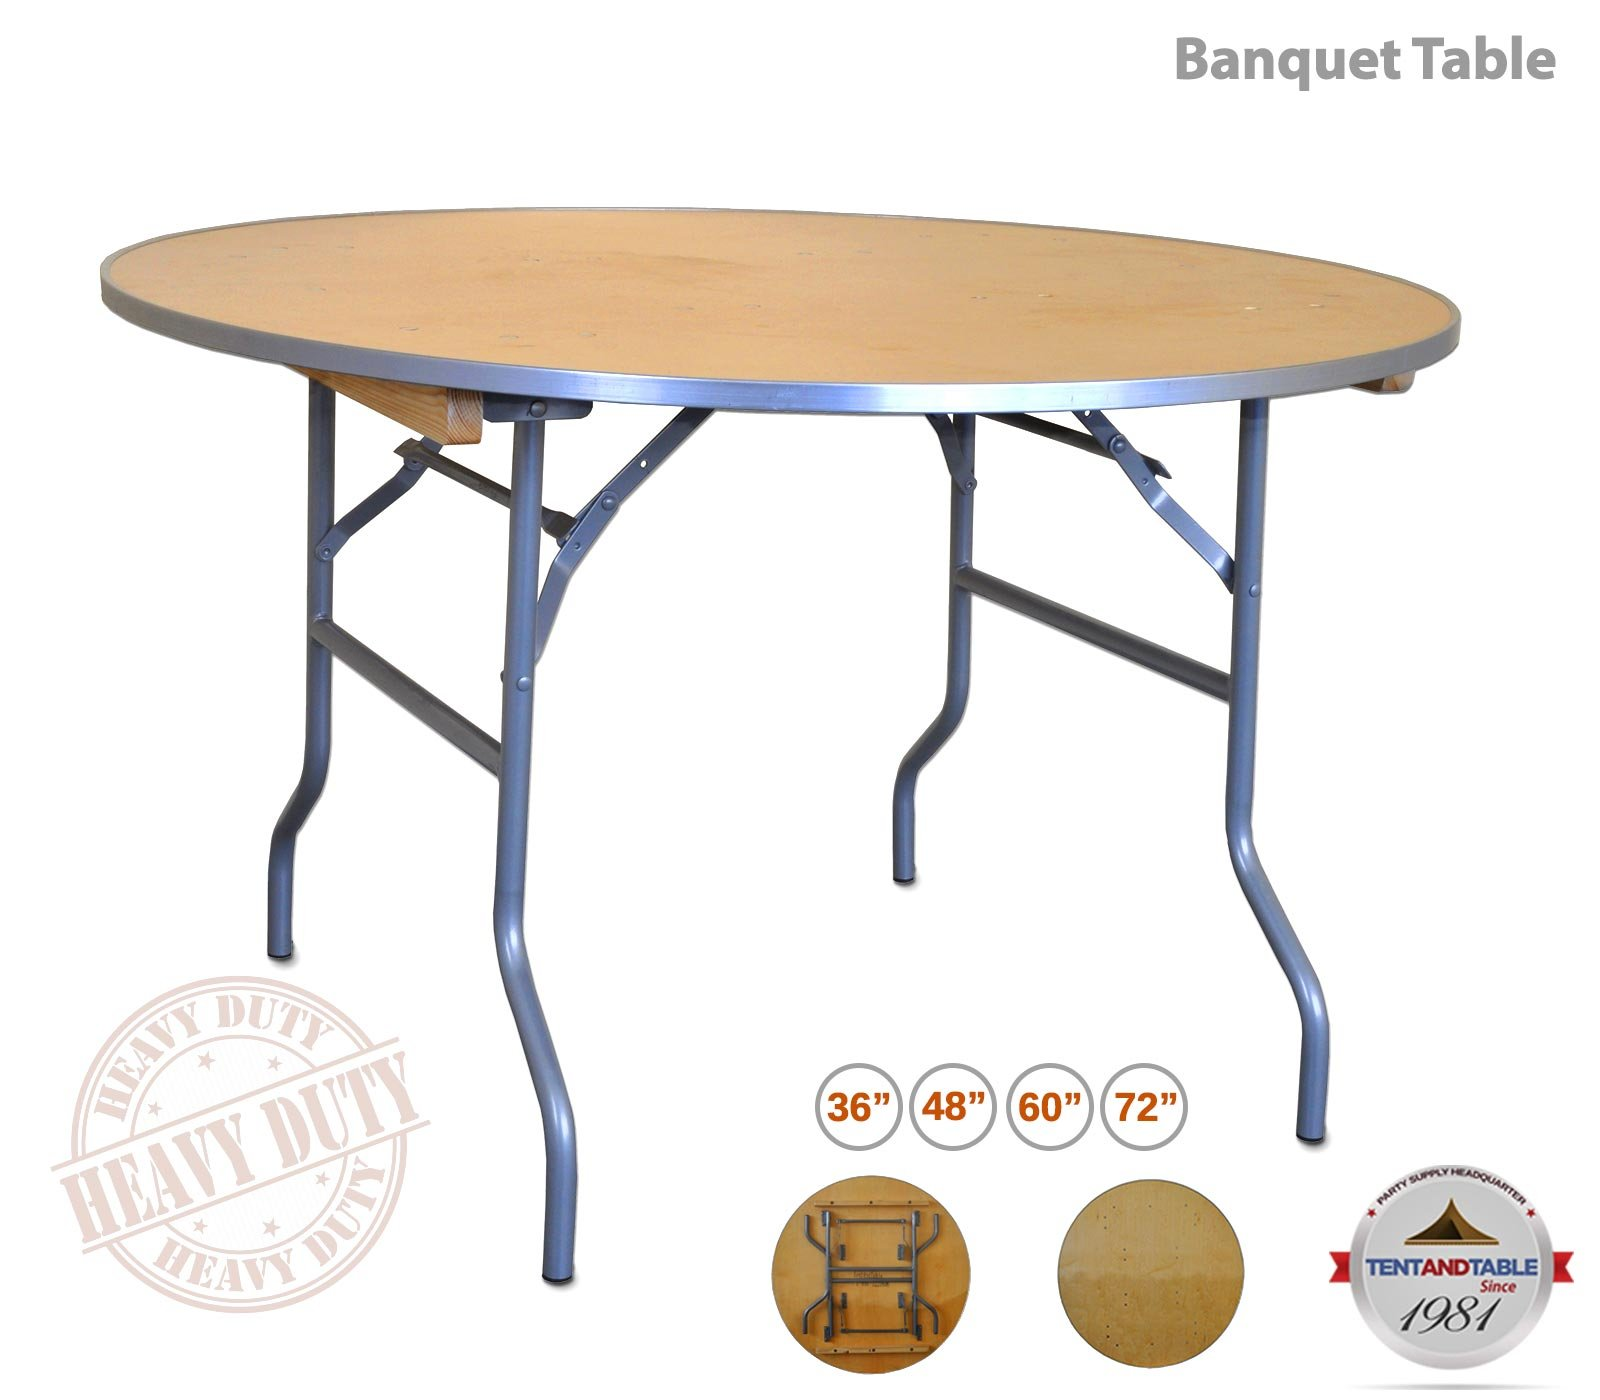 Heavy Duty 5-Foot (60-Inch) Diameter Round Solid Birch Wood Folding Table with 30-Inch Height and Aluminum Edge for Weddings, Parties, and Events (6-Pack)